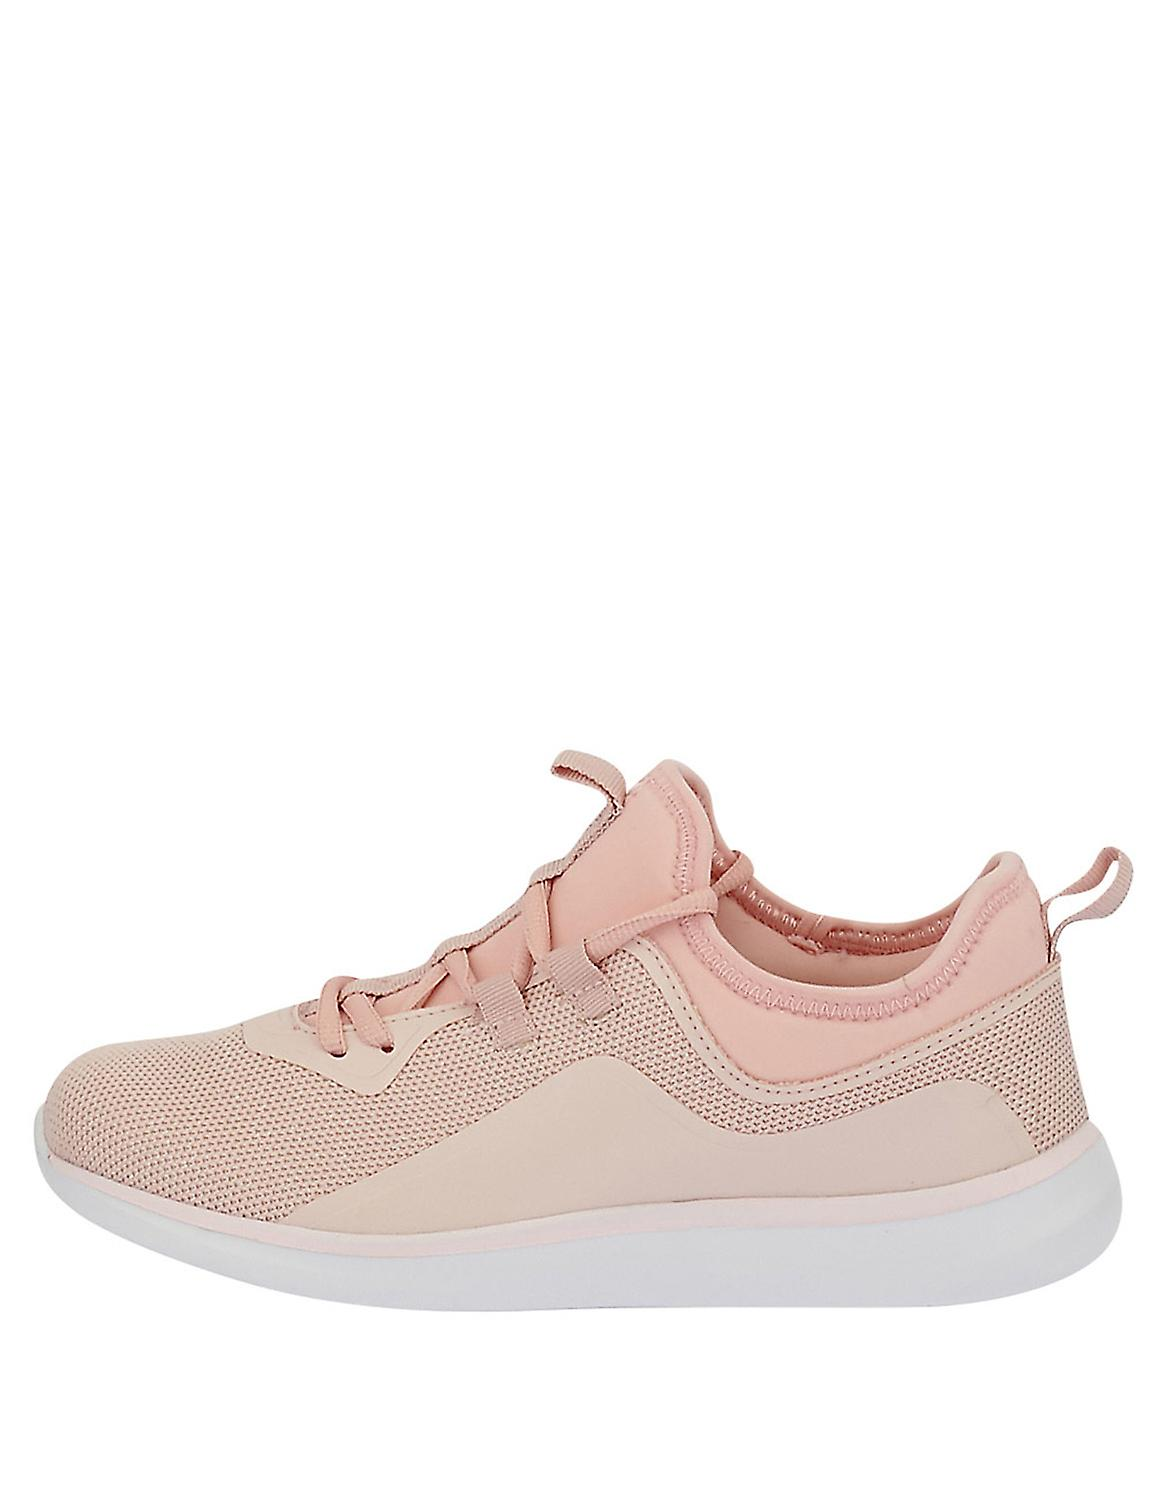 Bitter & Sweet Women's Running Shoes 7gCgx